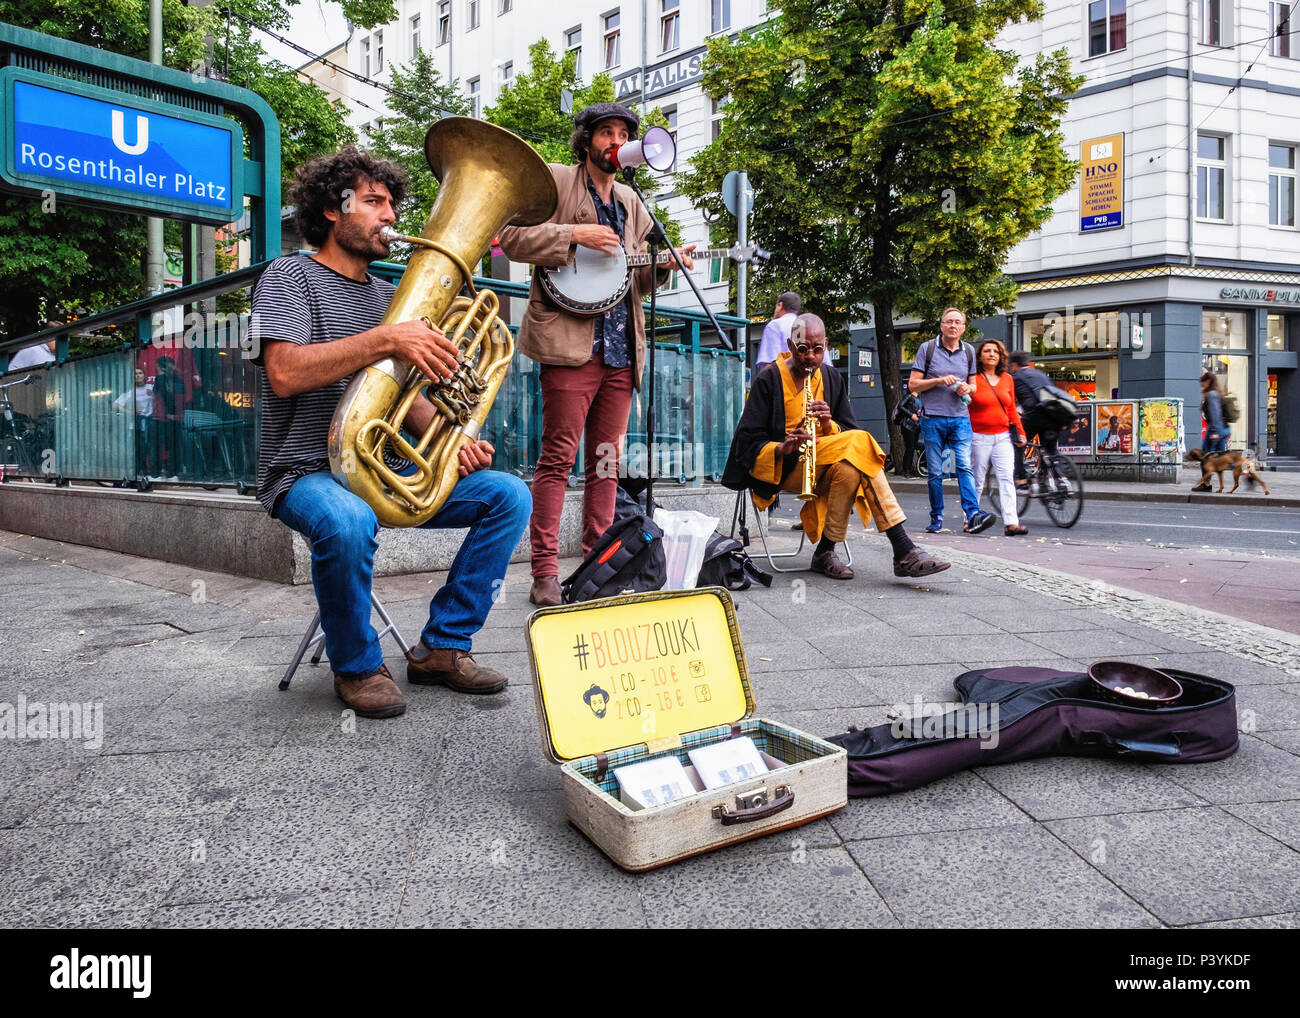 Three buskers play musical instruments & perform for passers-by on a warm Summer evening, Rosenthaler Platz, Mitte, Berlin - Stock Image